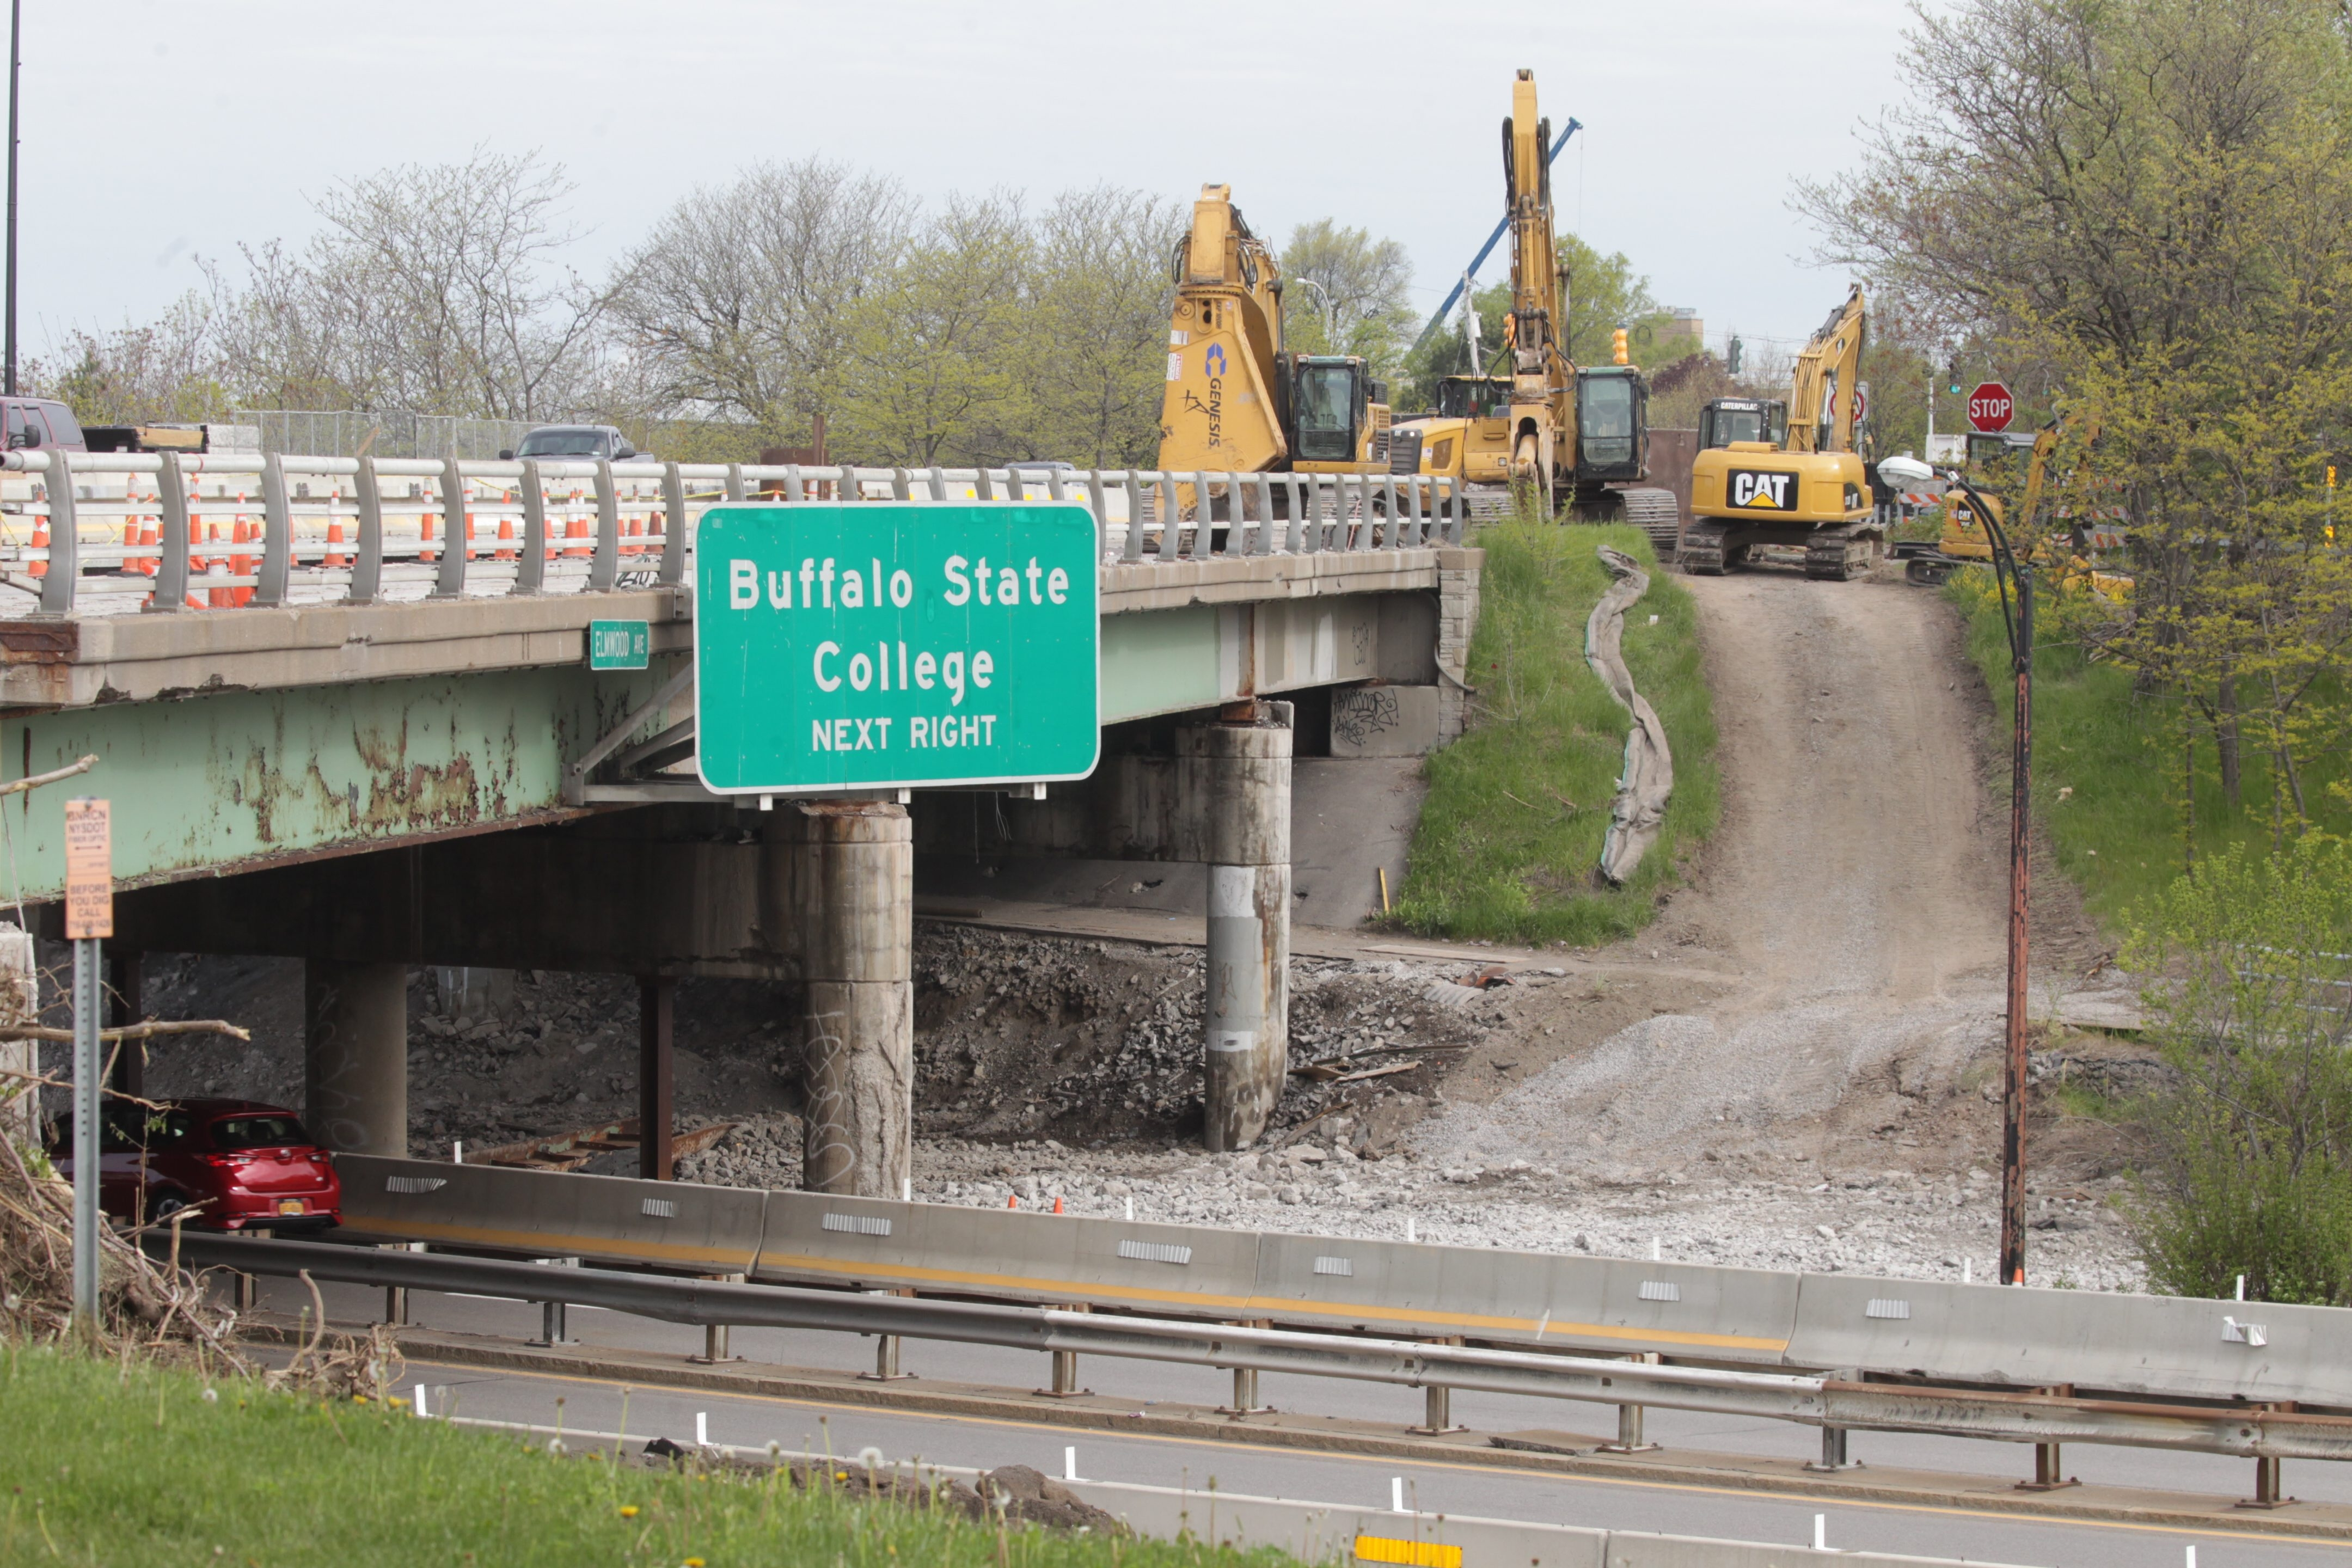 Work on the Elmwood Avenue bridge has slowed traffic where it crosses the Scajaquada Expressway, Route 198.